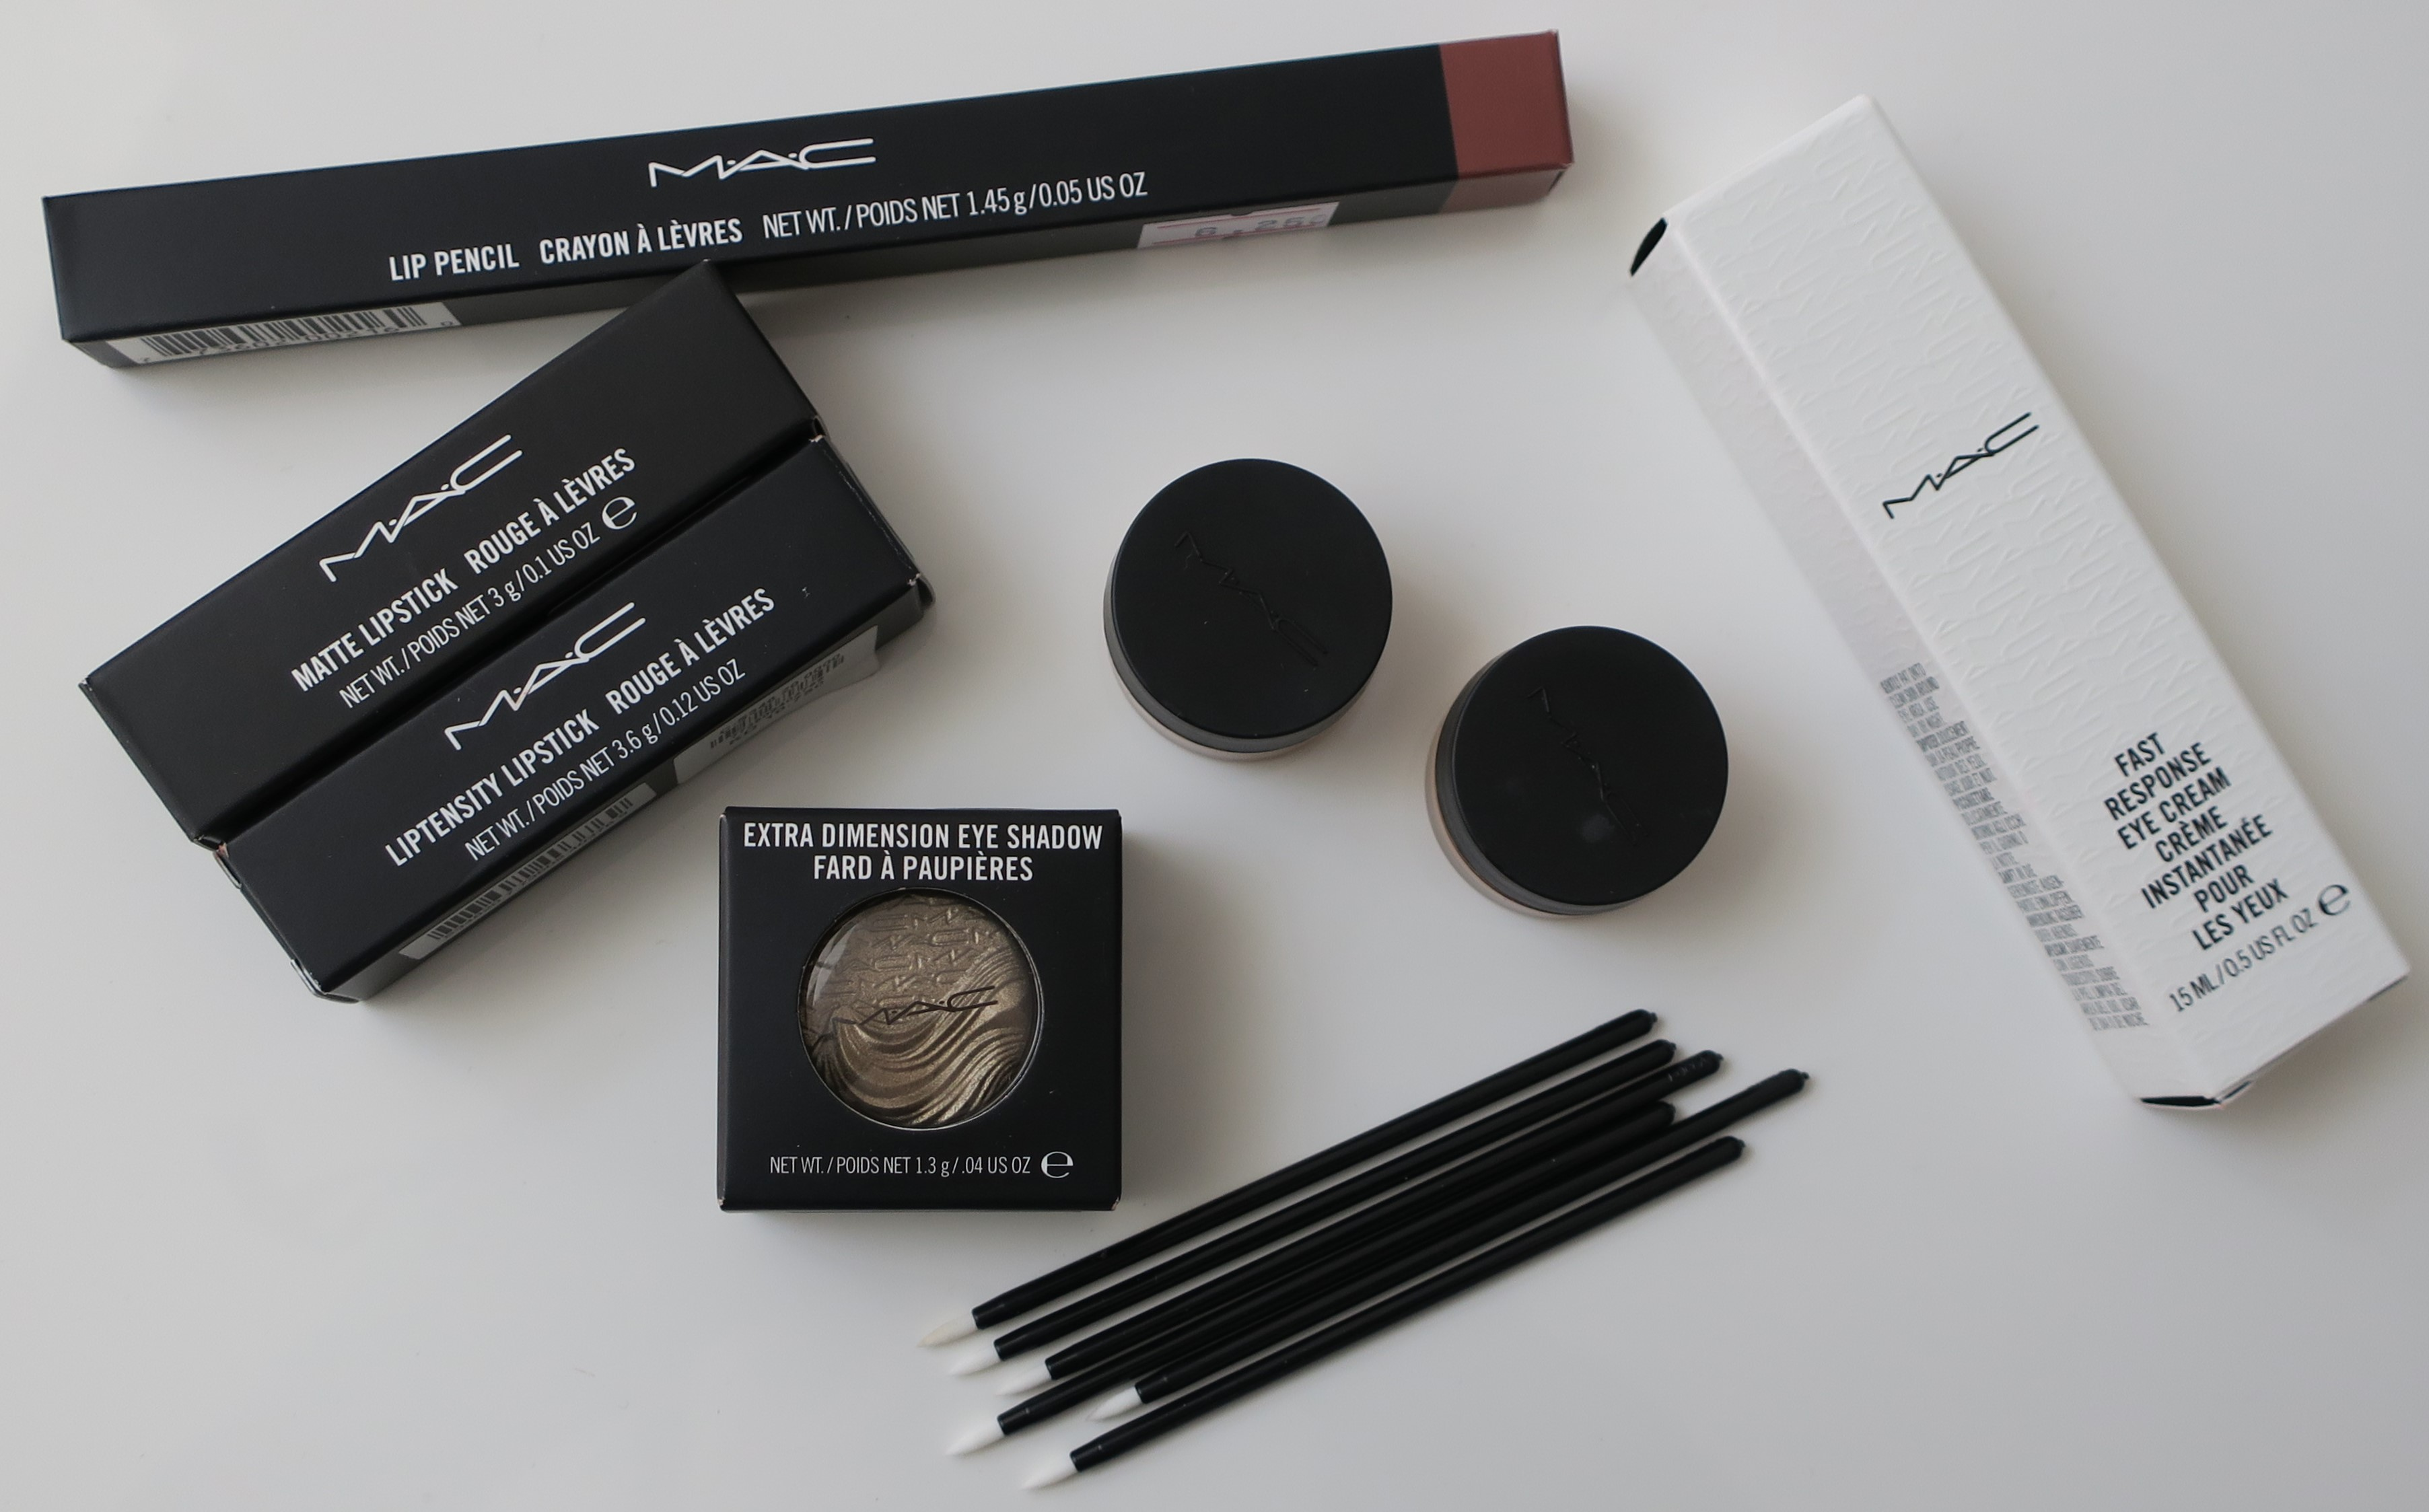 I know I've stated time and time again that I'm so over Lip Liners. In fact, I'm planning on getting rid of all of the Lip Liners I currently ...